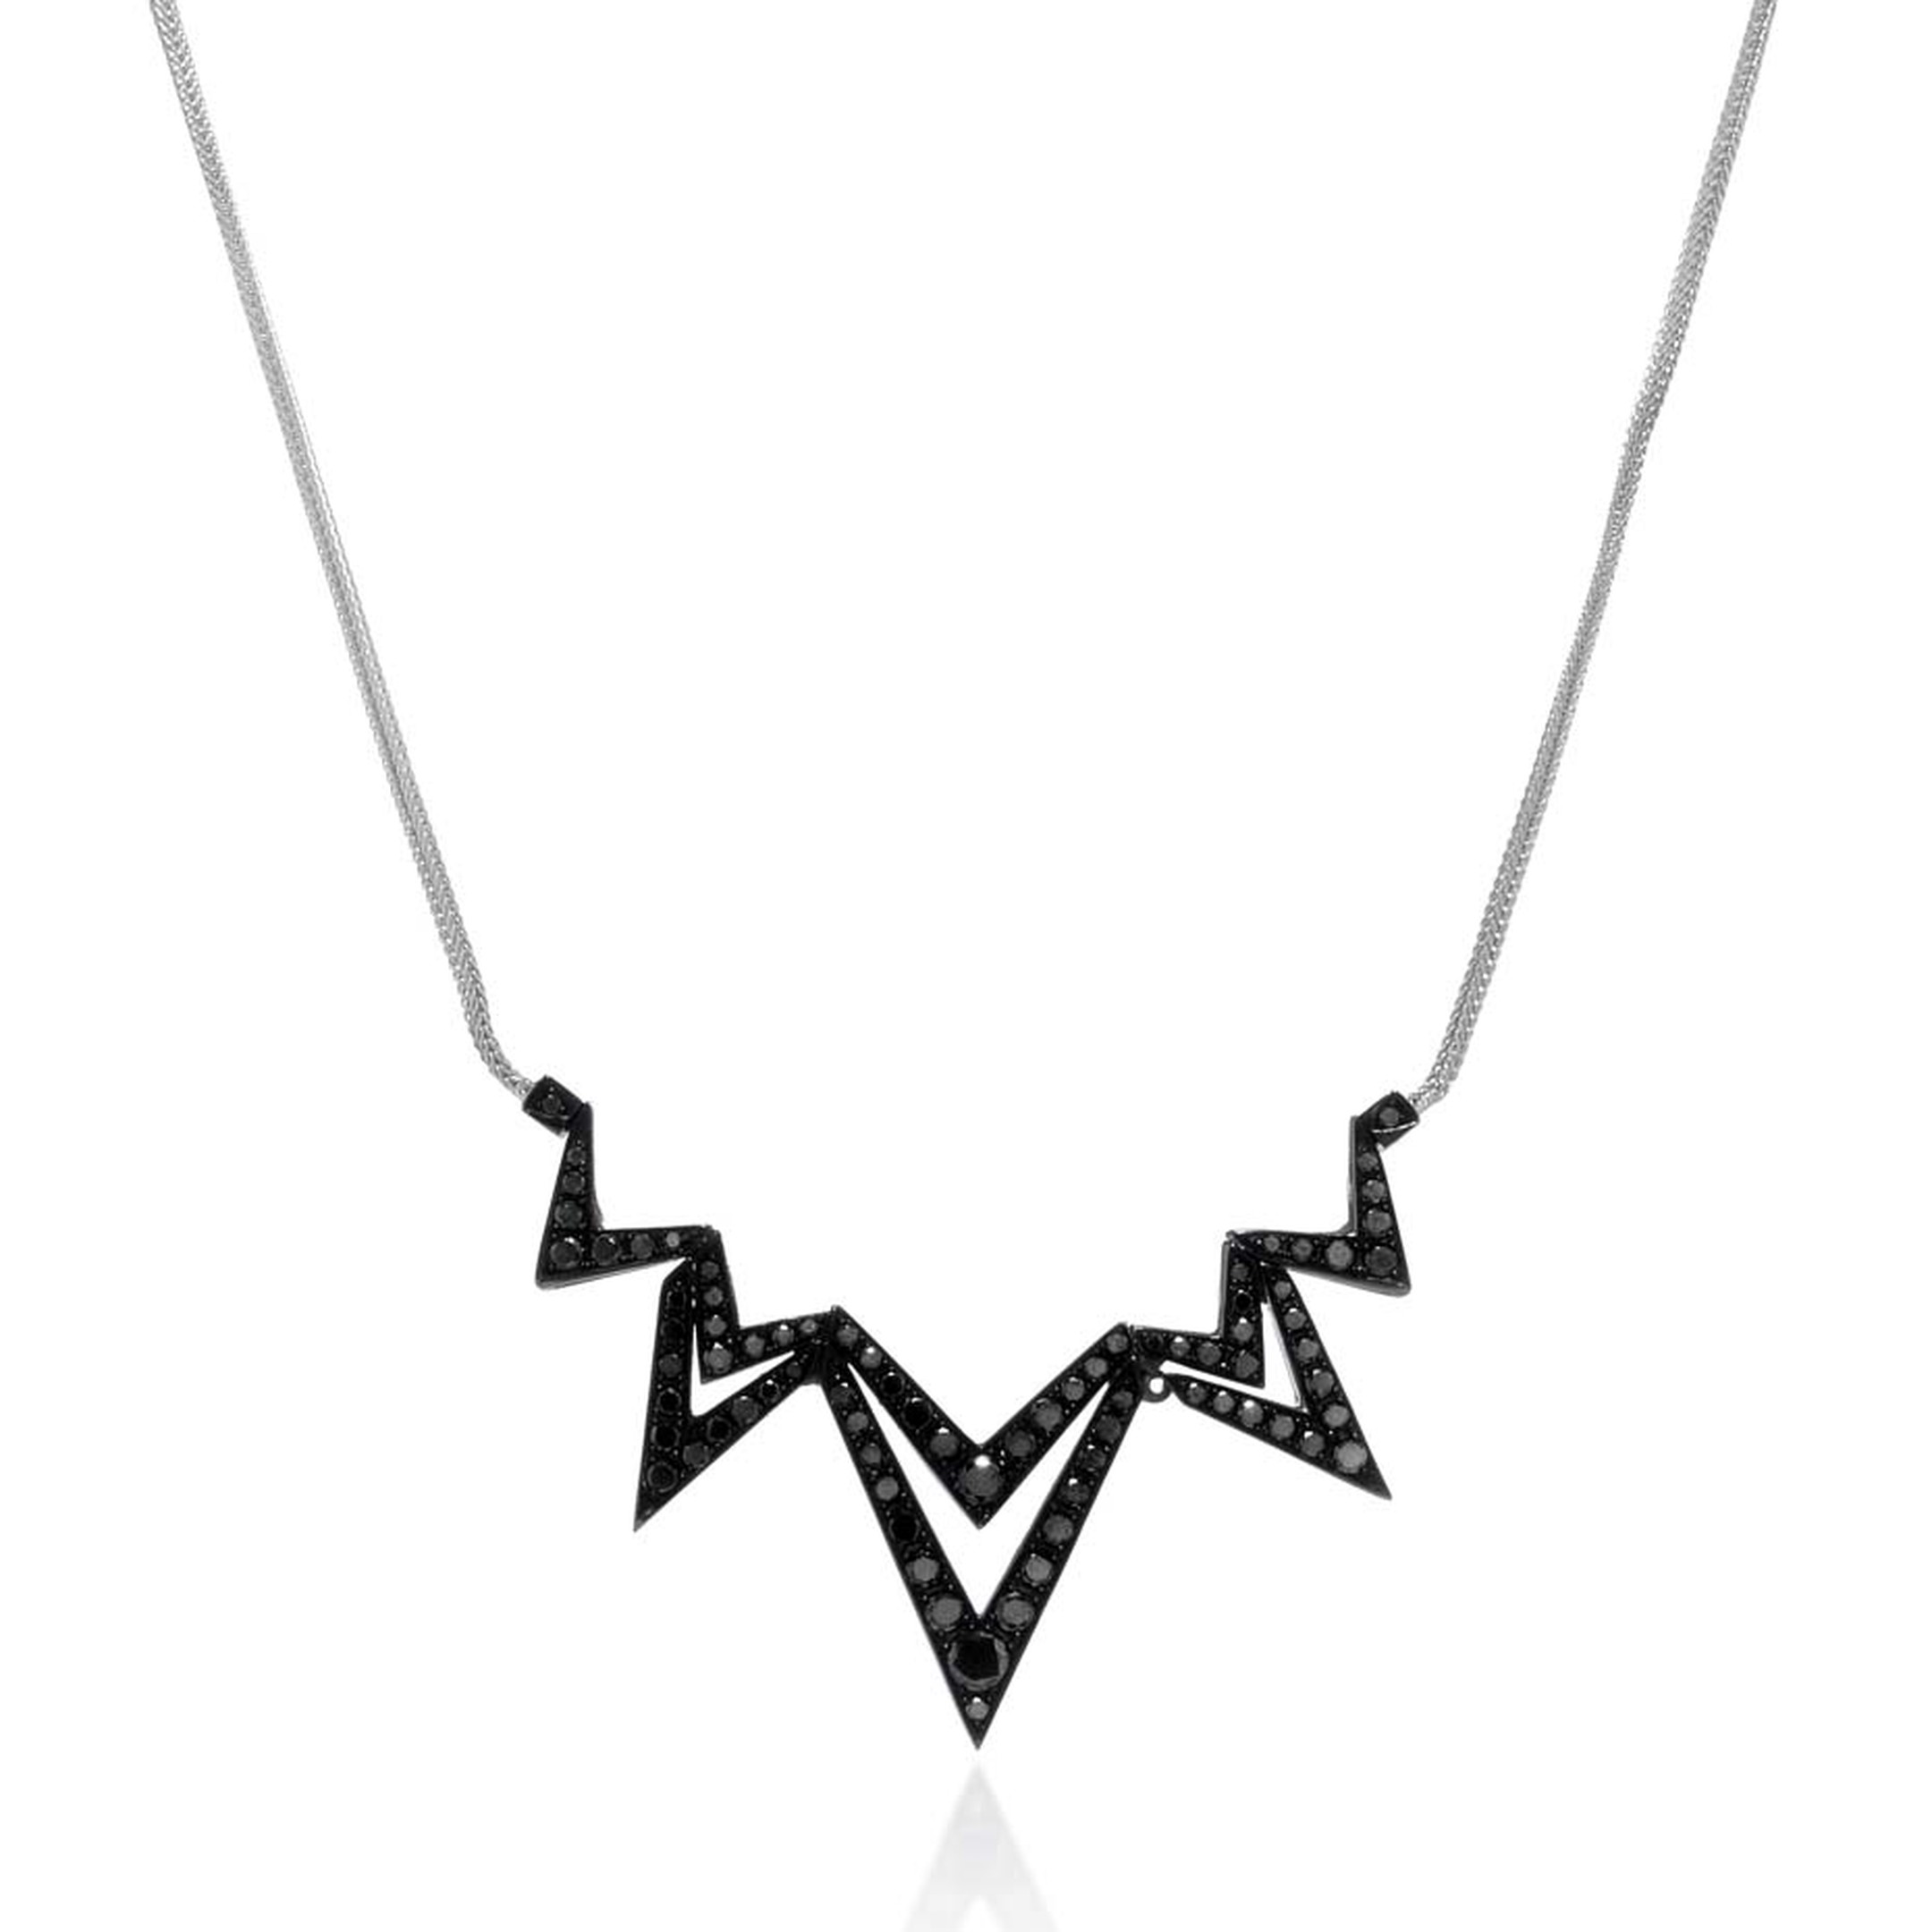 Stephen Webster Lady Stardust necklace with black diamonds (£4,300).